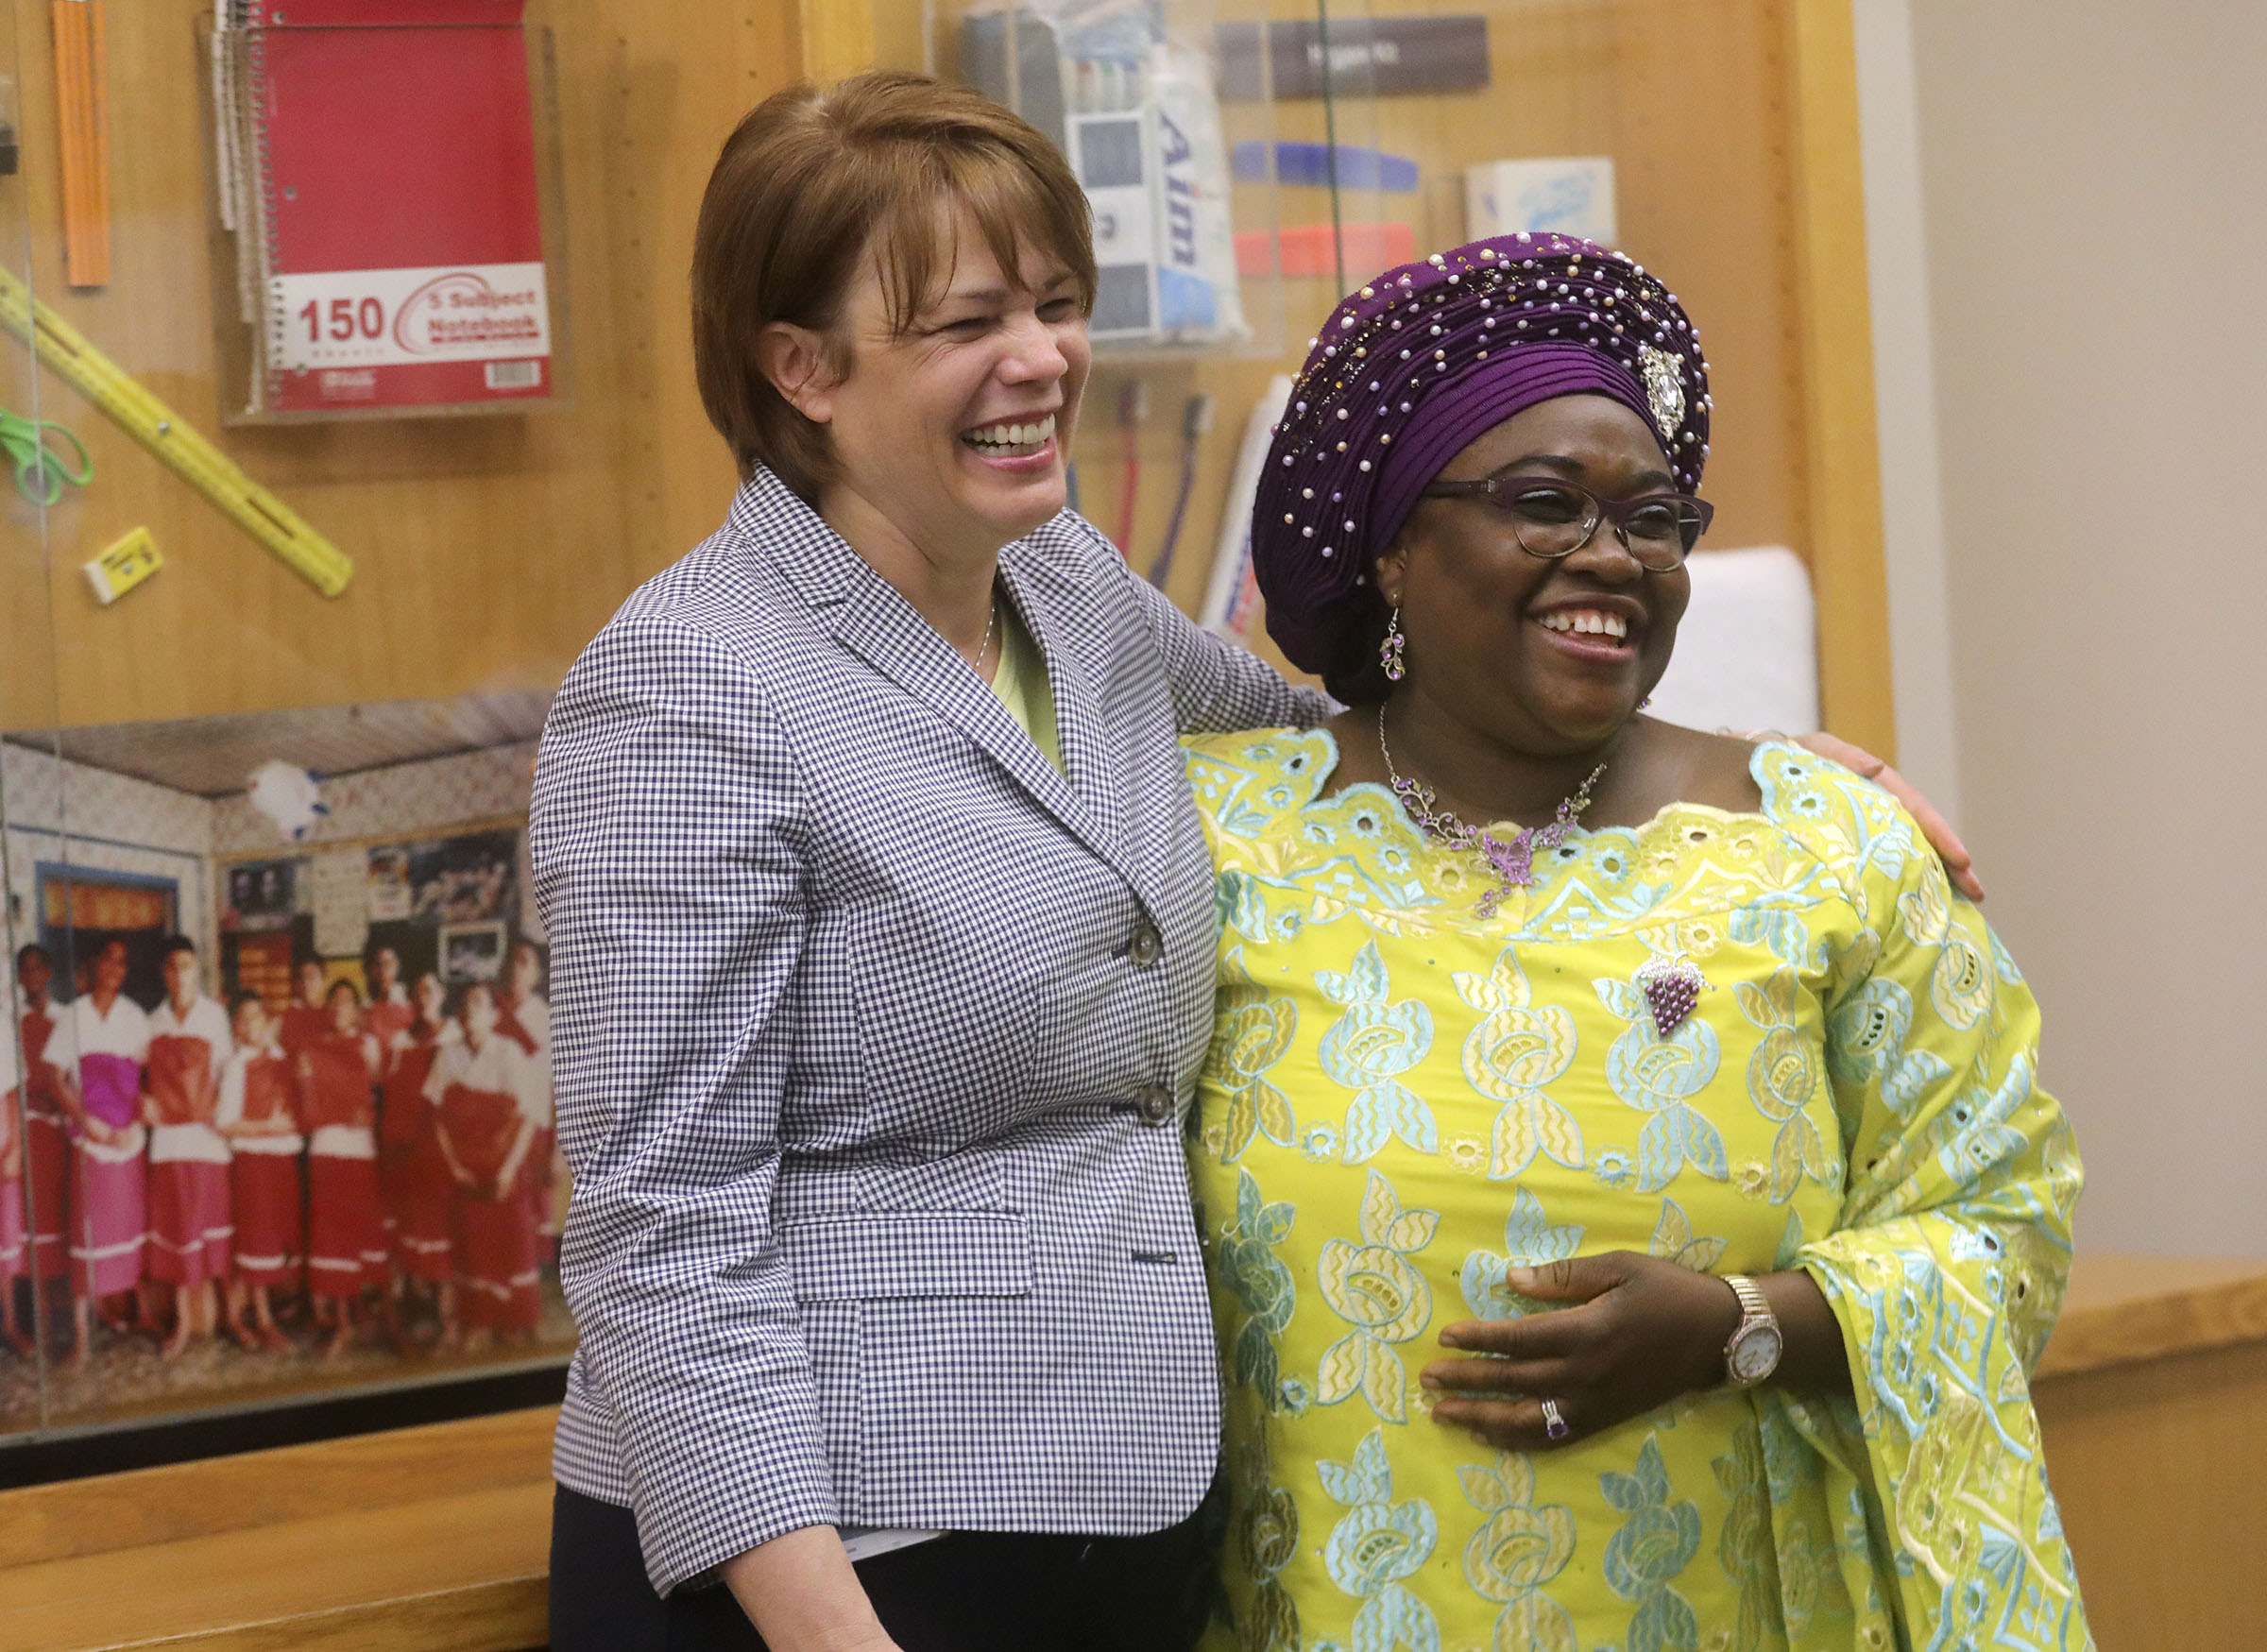 Sister Sharon Eubank, first counselor in the Relief Society general presidency, hugs Mariama Kallon-Olayemi, guest speaker, after Kallon-Olayemi shared her experience of receiving a donated sanitary kit during a tour for spouses of U.S. governors at the Latter-day Saint Humanitarian Center in Salt Lake City on Thursday, July 25, 2019.